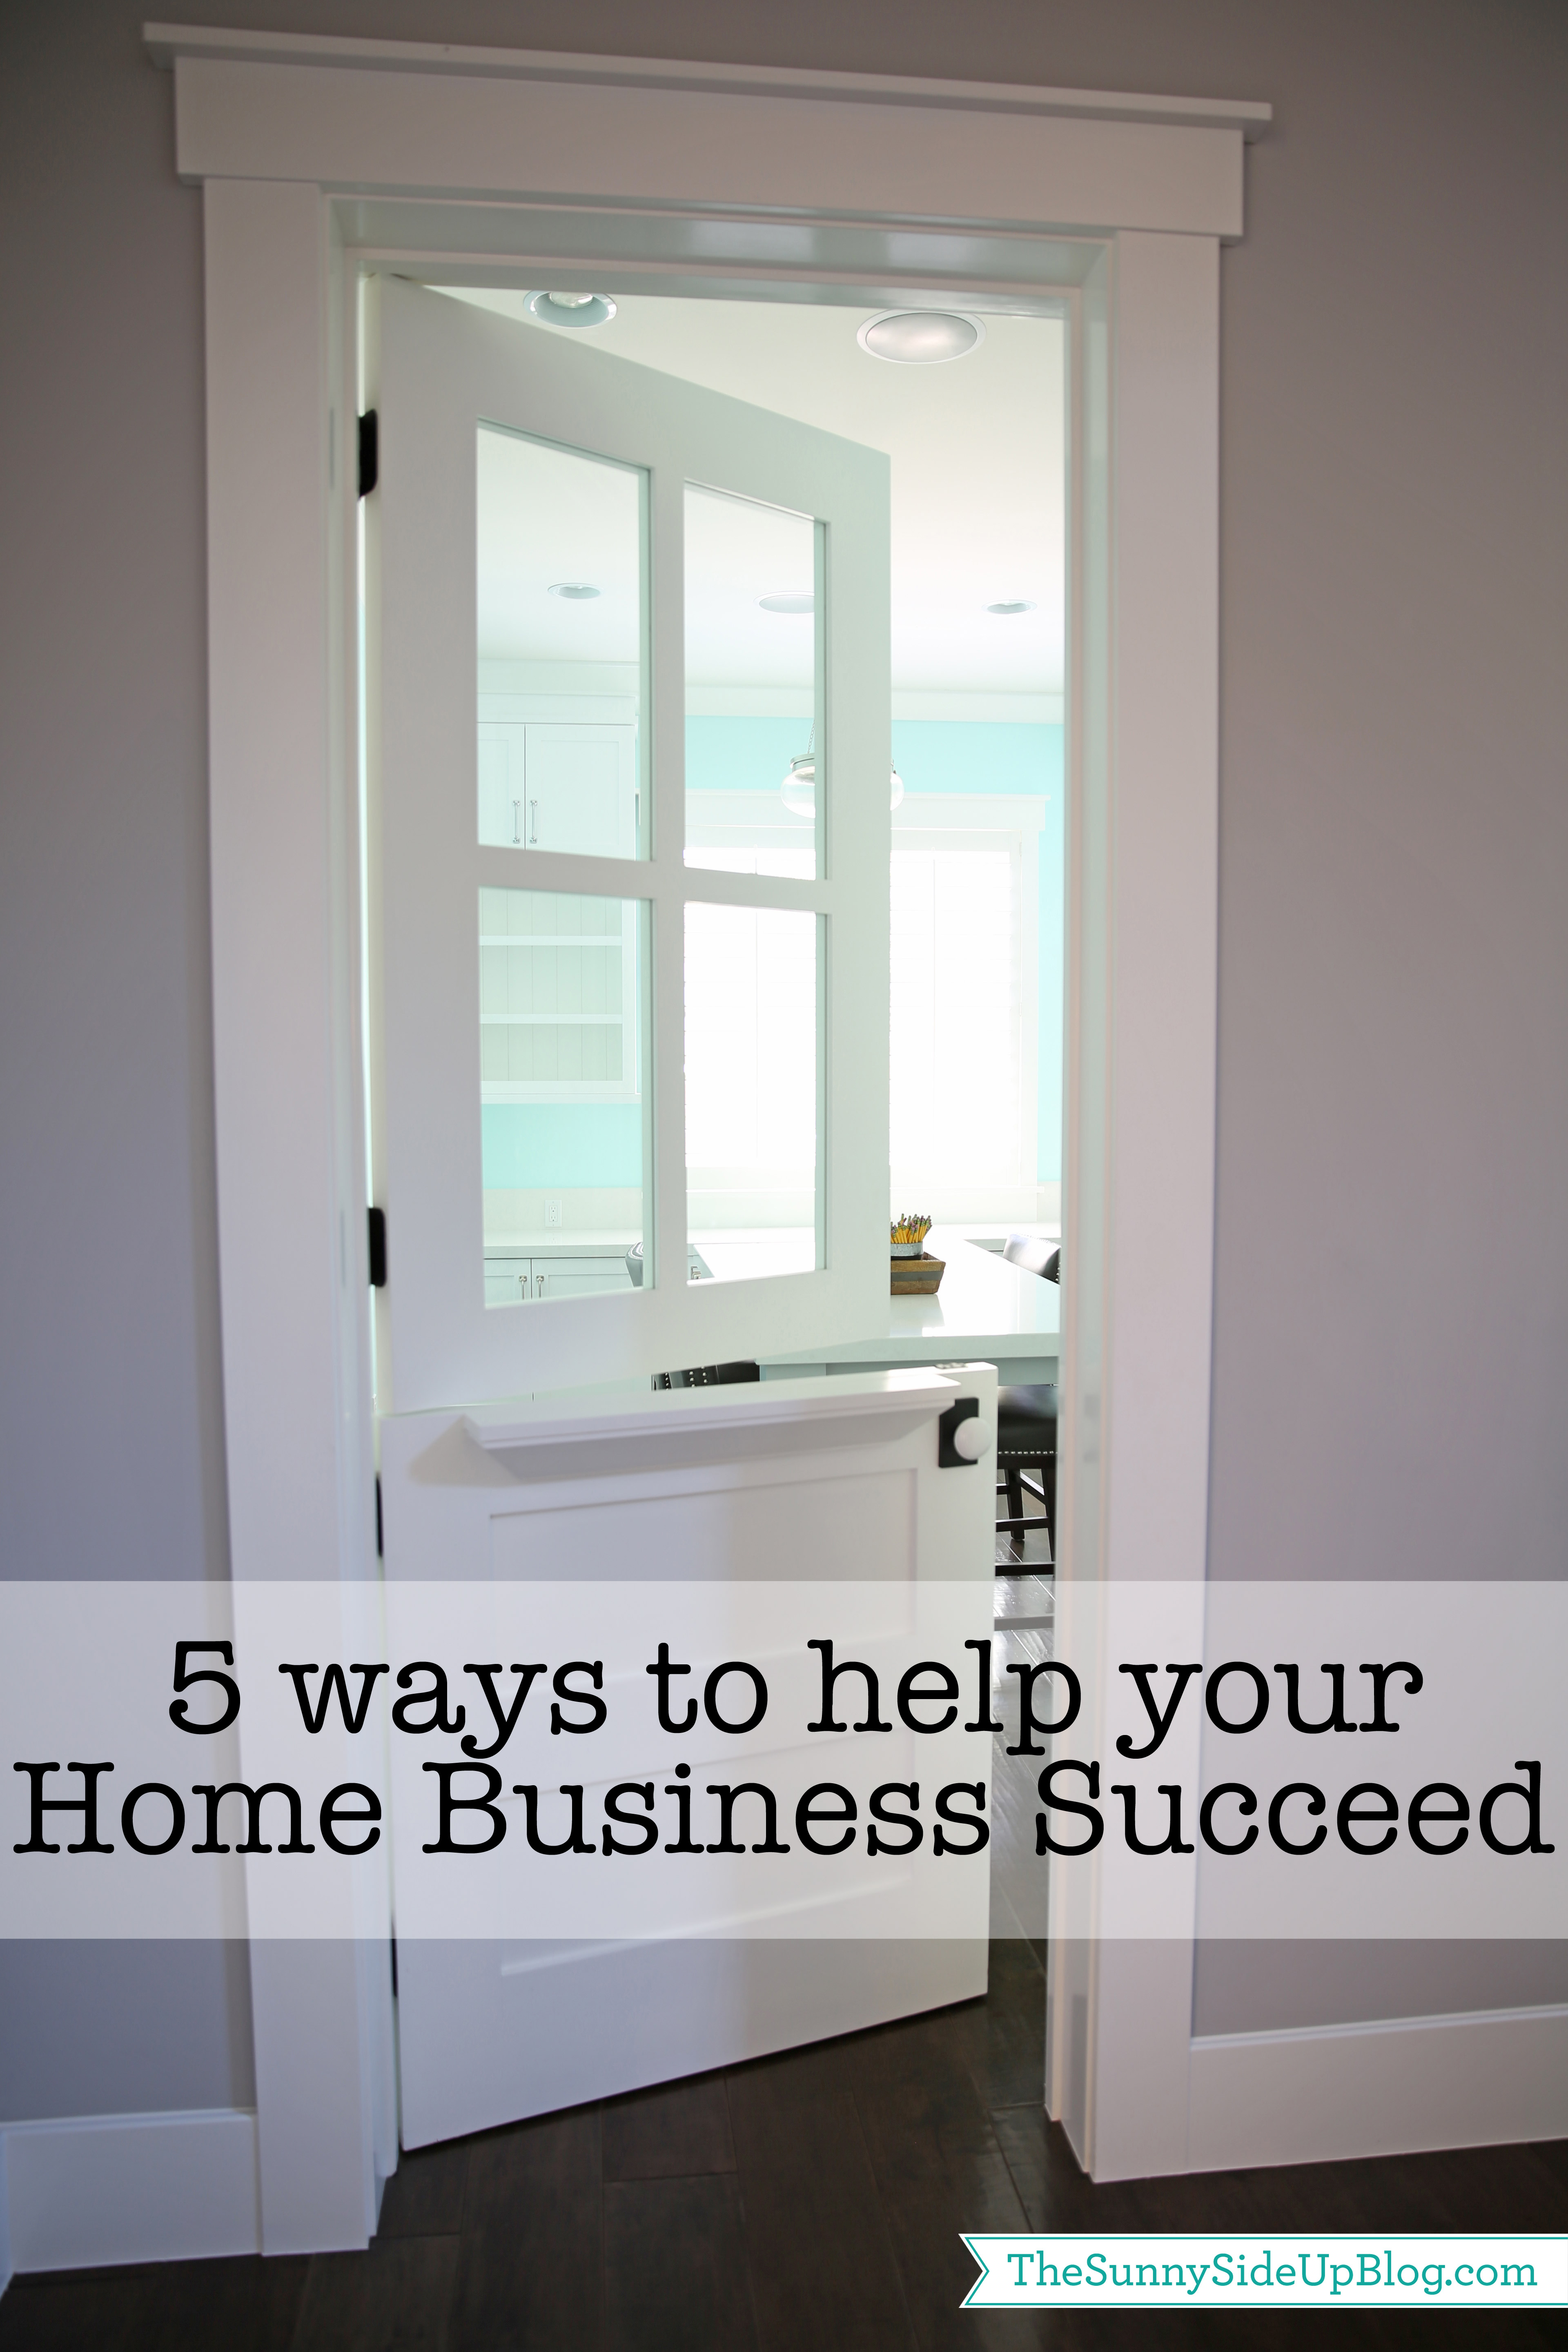 5 ways to help your home business succeed